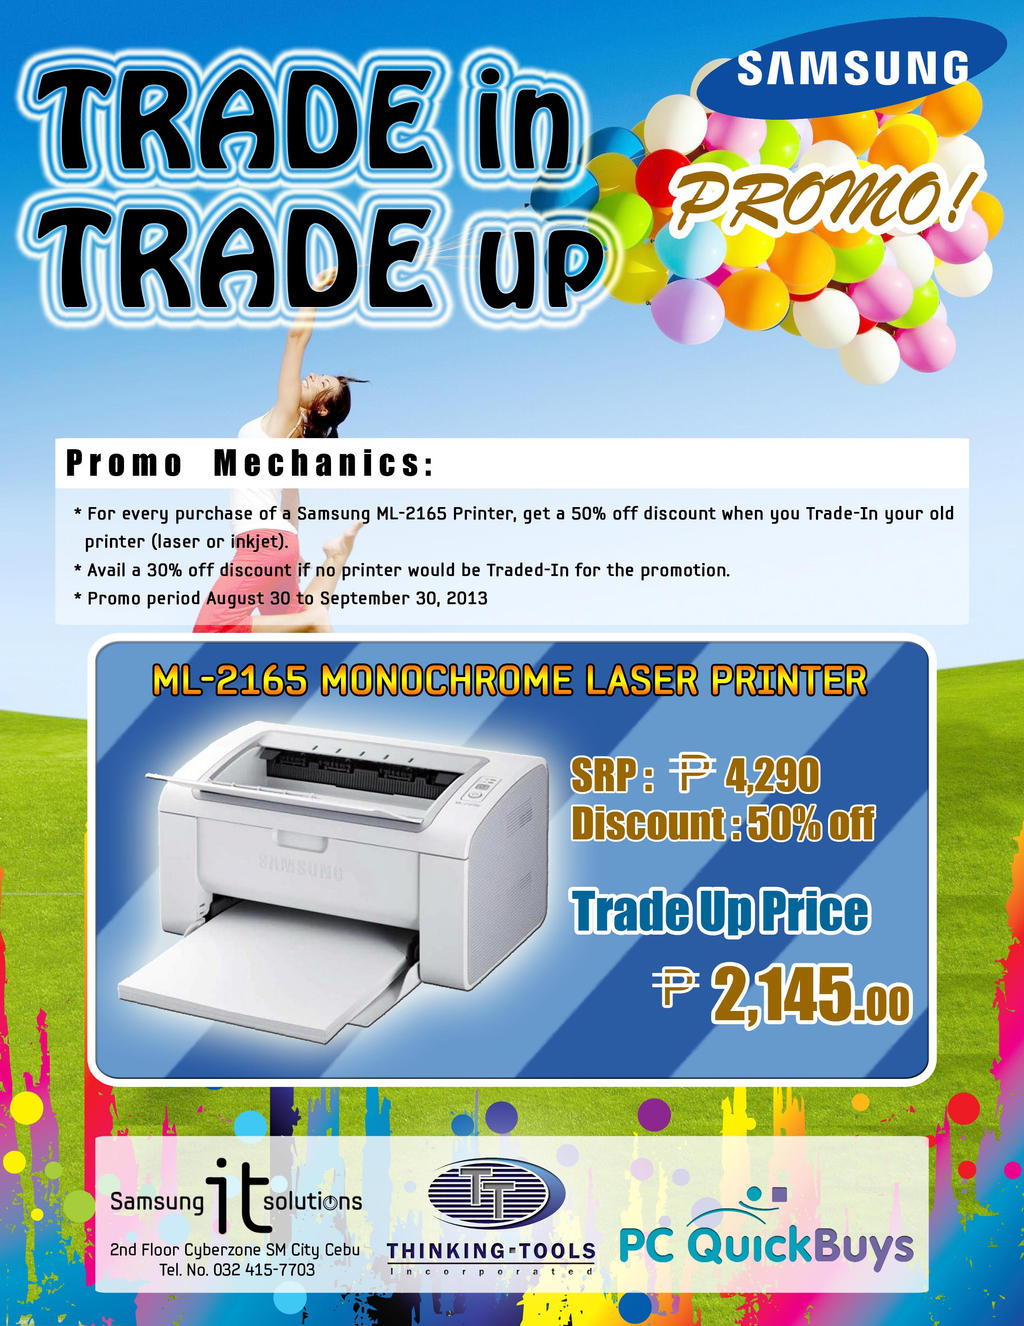 hp sample flyer by tellan07 on samsung sample promo flyer by tellan07